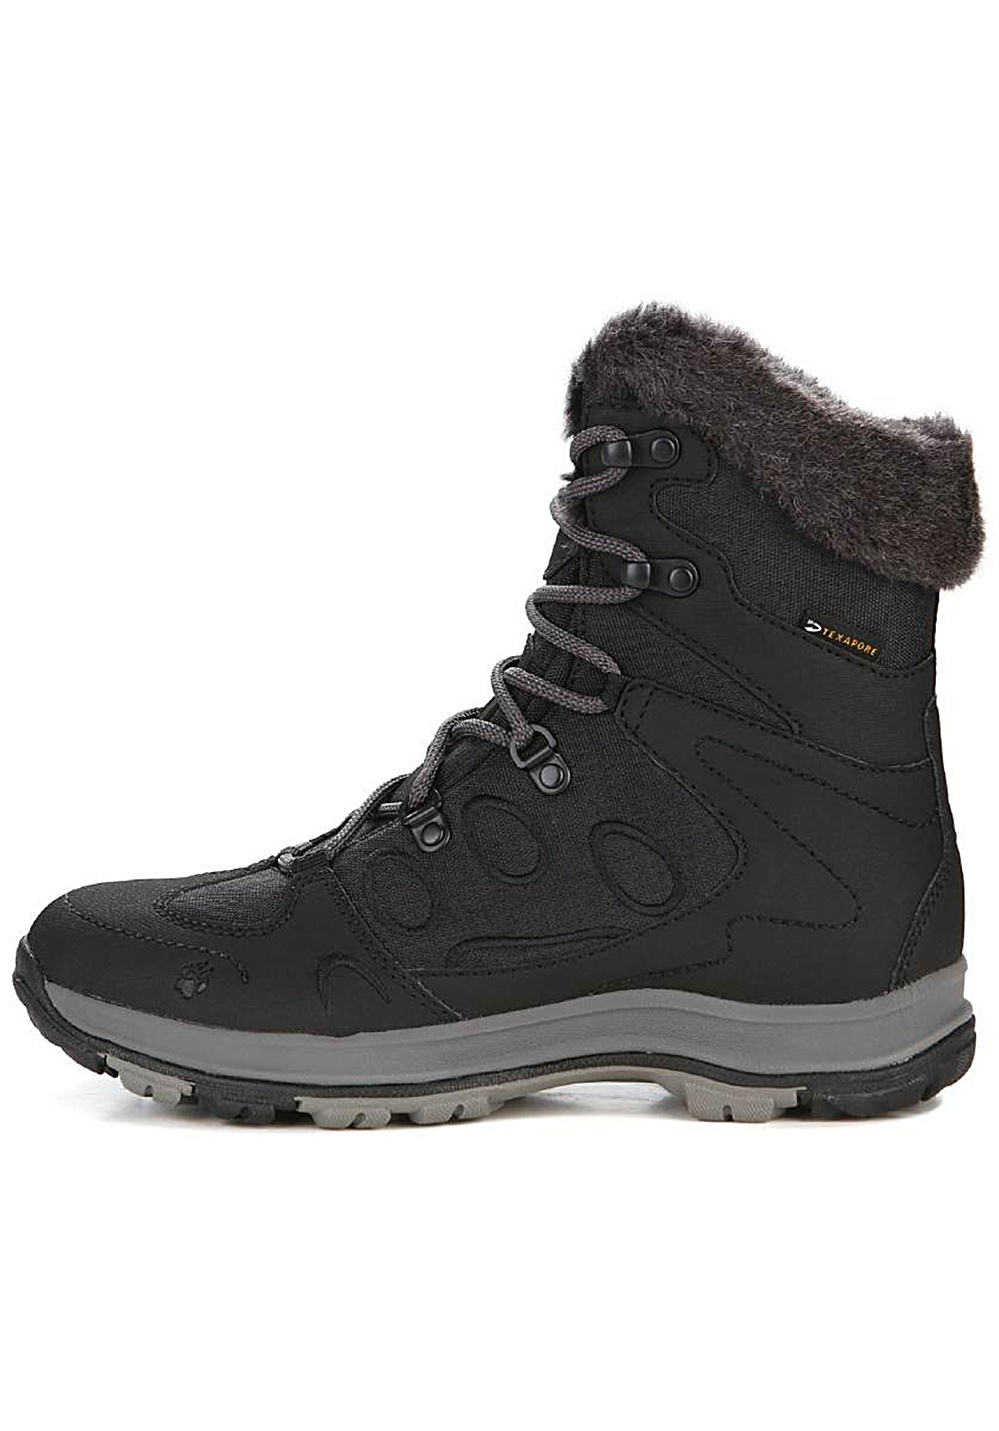 Jack Wolfskin Thunder Bay Texapore Mid Boots for Women